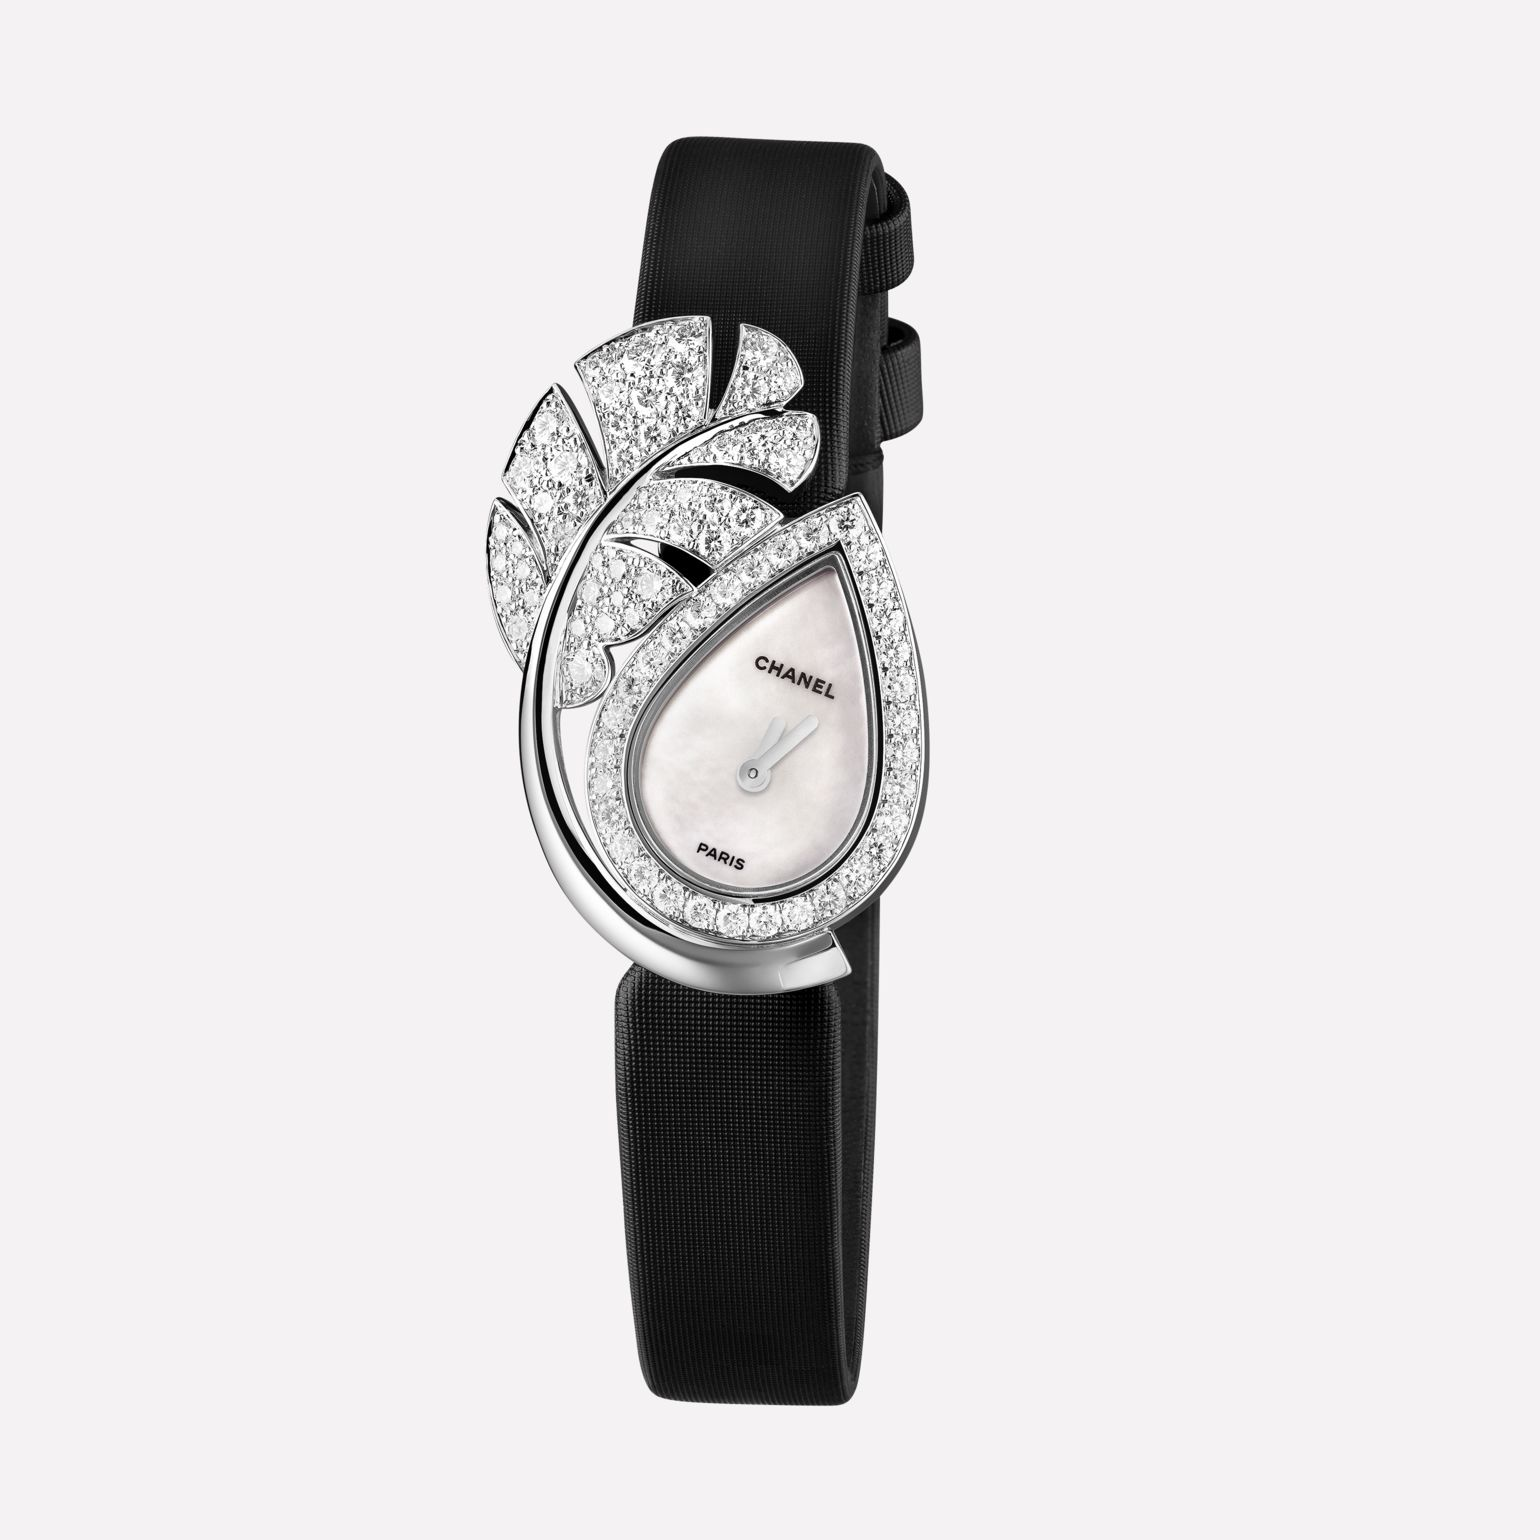 Plume de CHANEL Jewellery Watch Feather motif in 18K white gold and diamonds